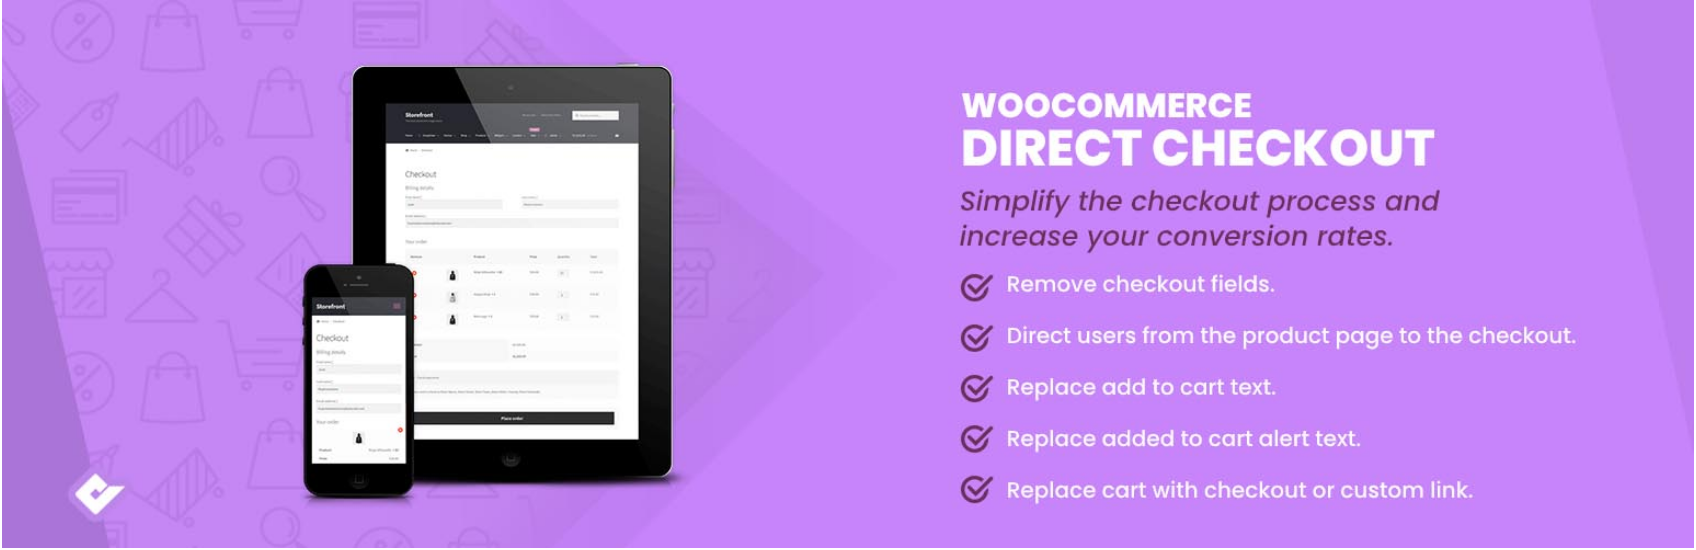 Best WooCommerce Checkout Plugins for 2020 (Free and Paid)